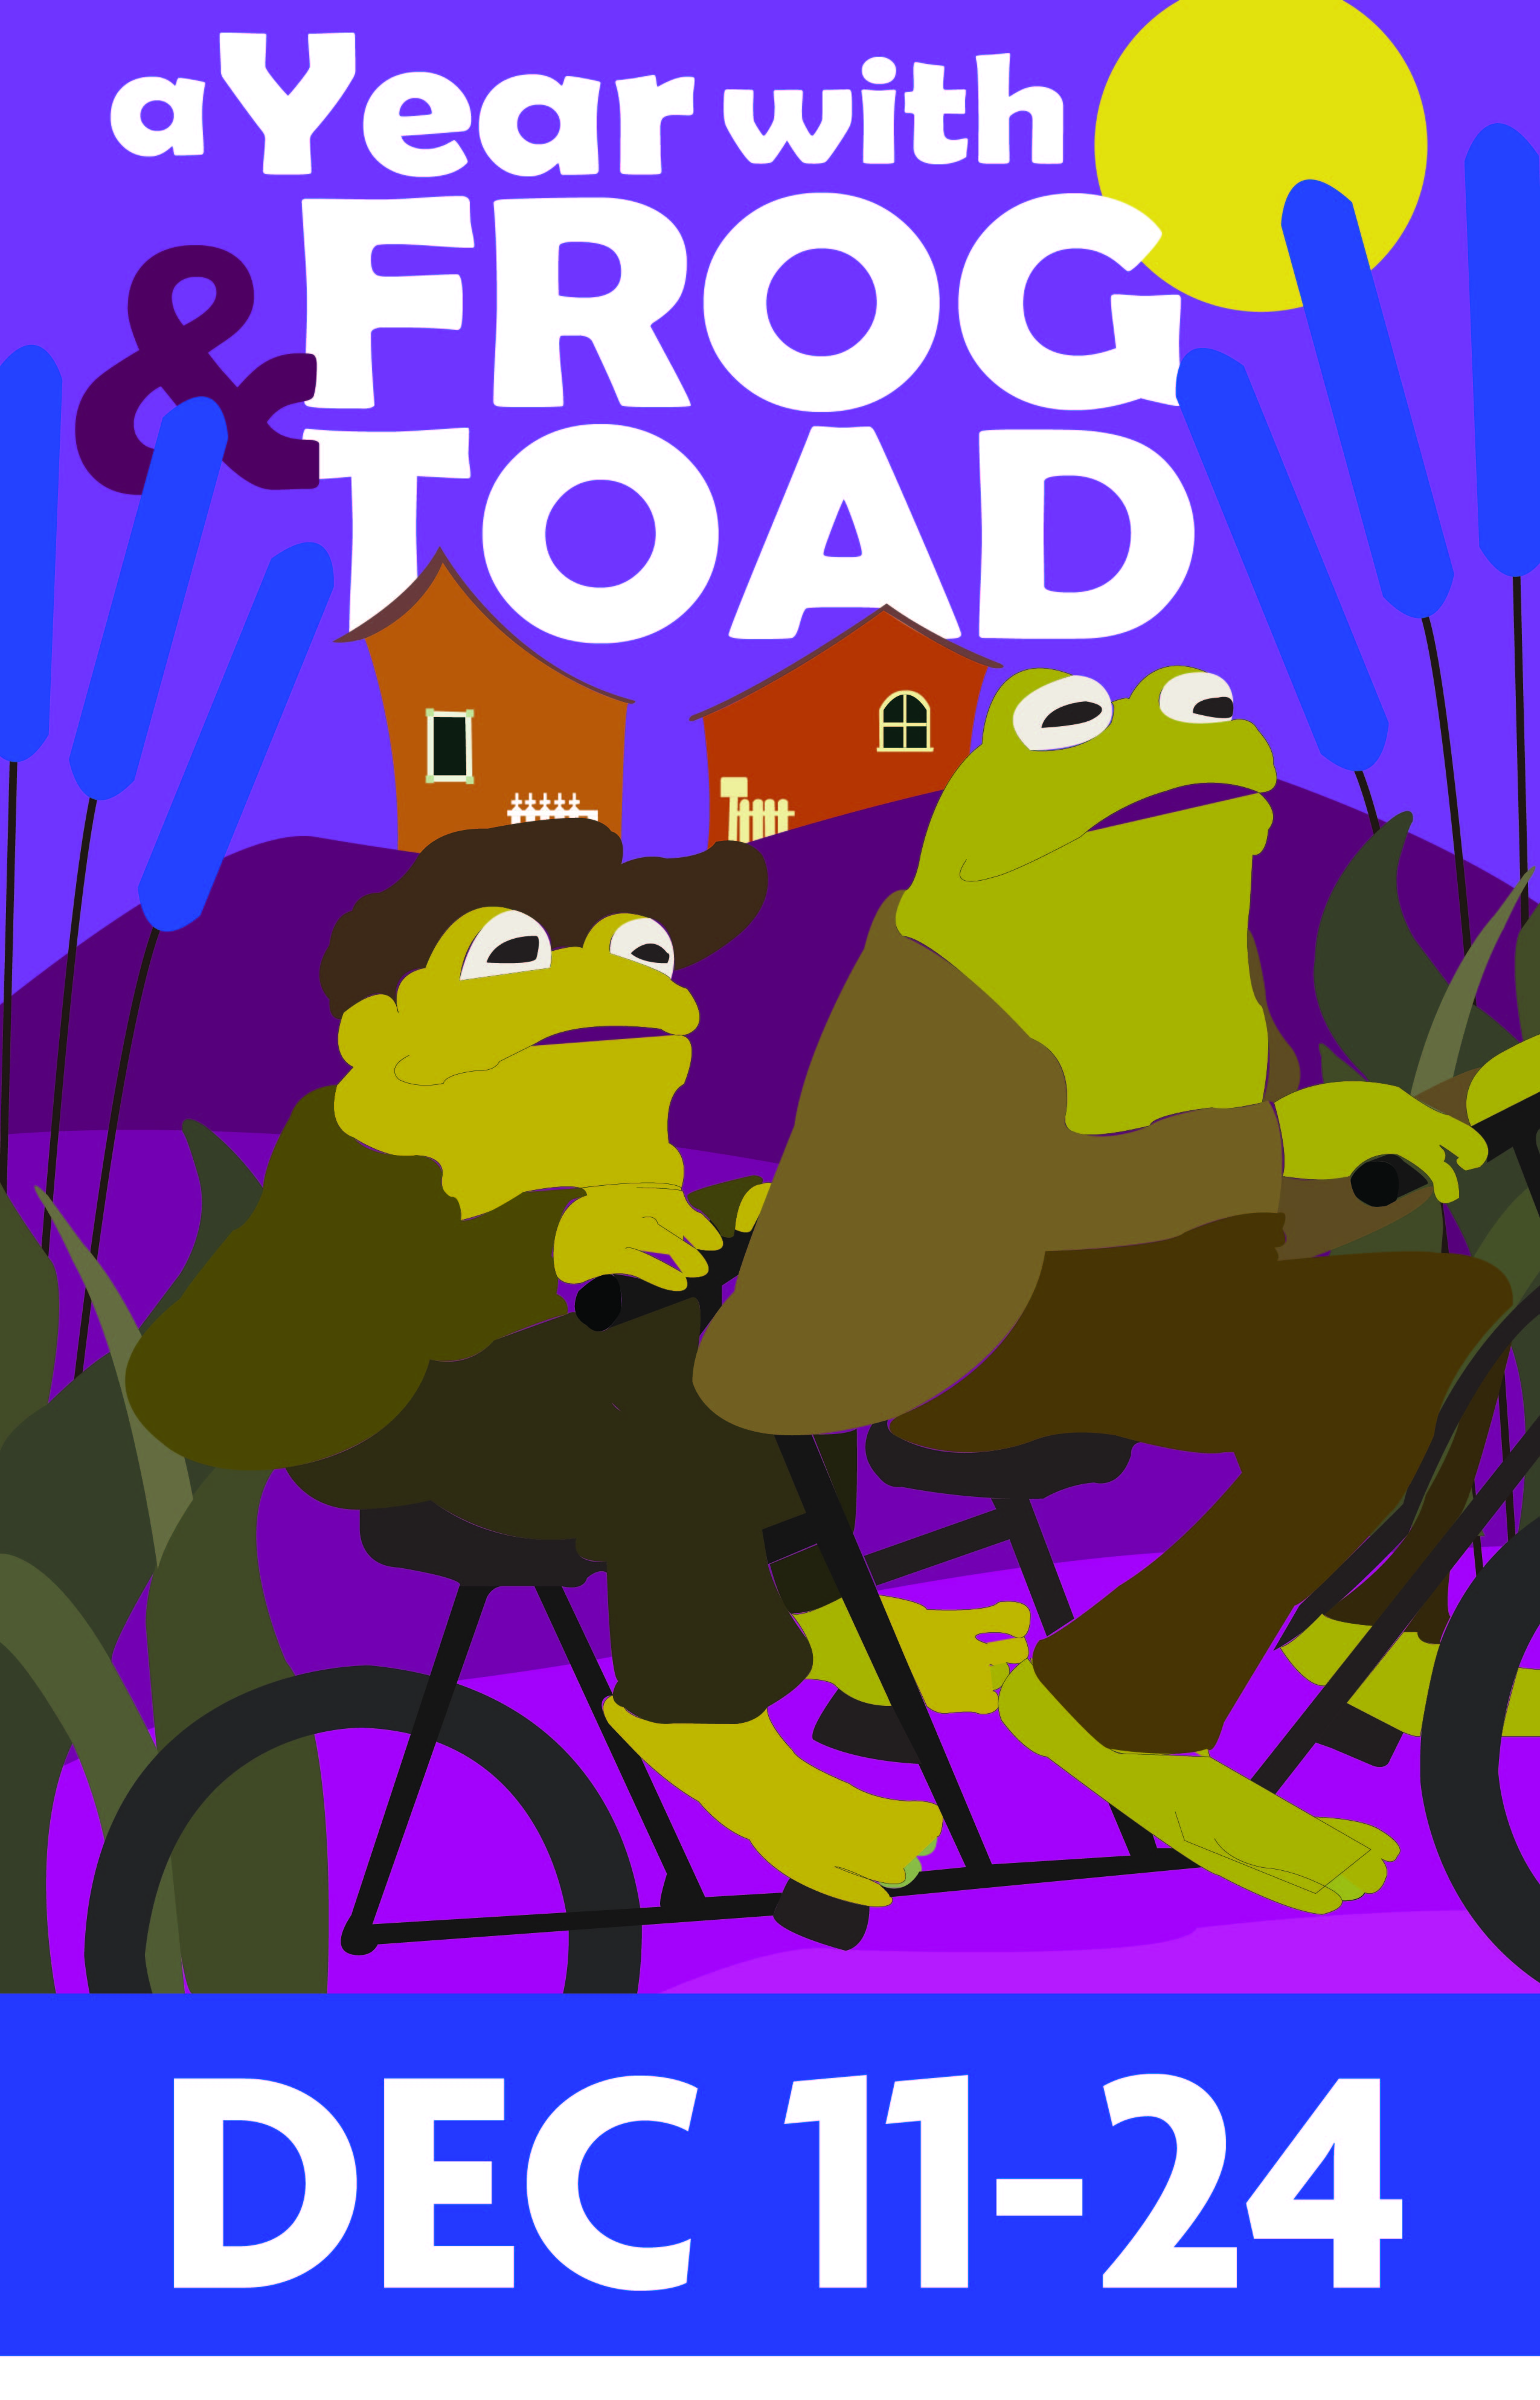 A Year with Frog and Toad Show Poster